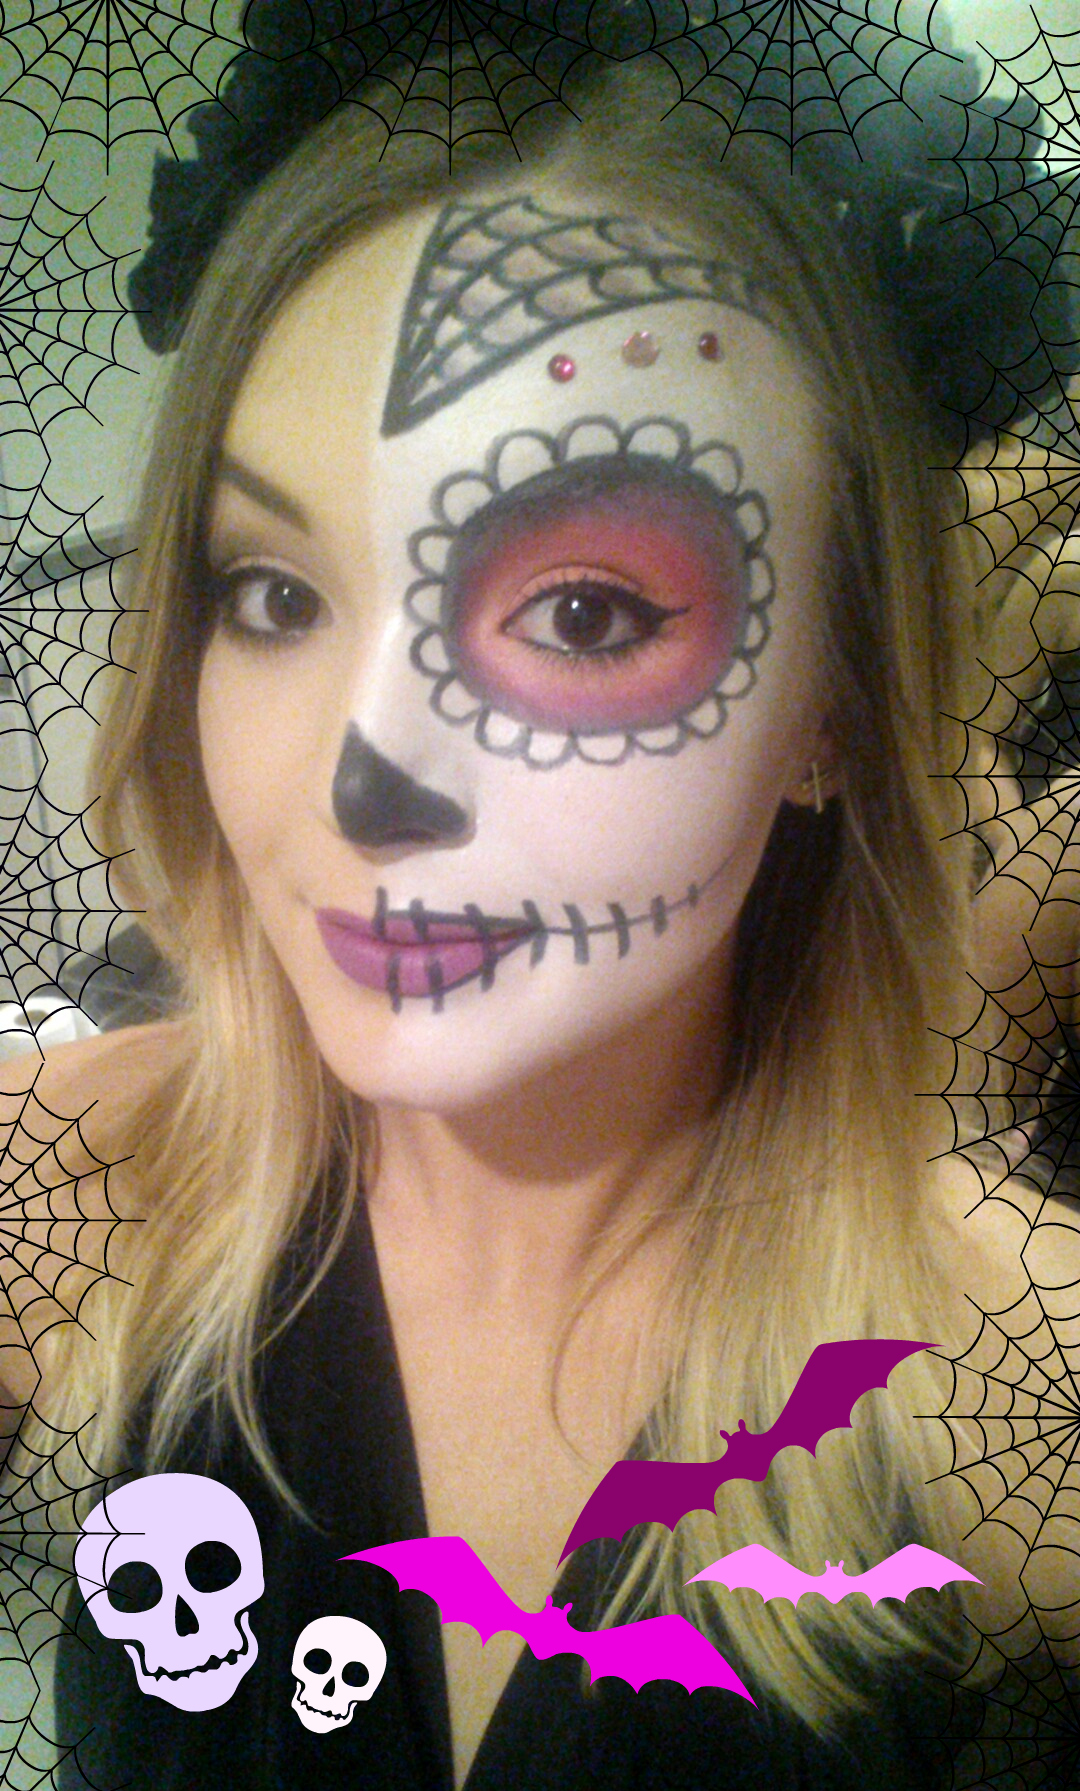 ... makeup geeks like me can really go all out and be creative with makeup